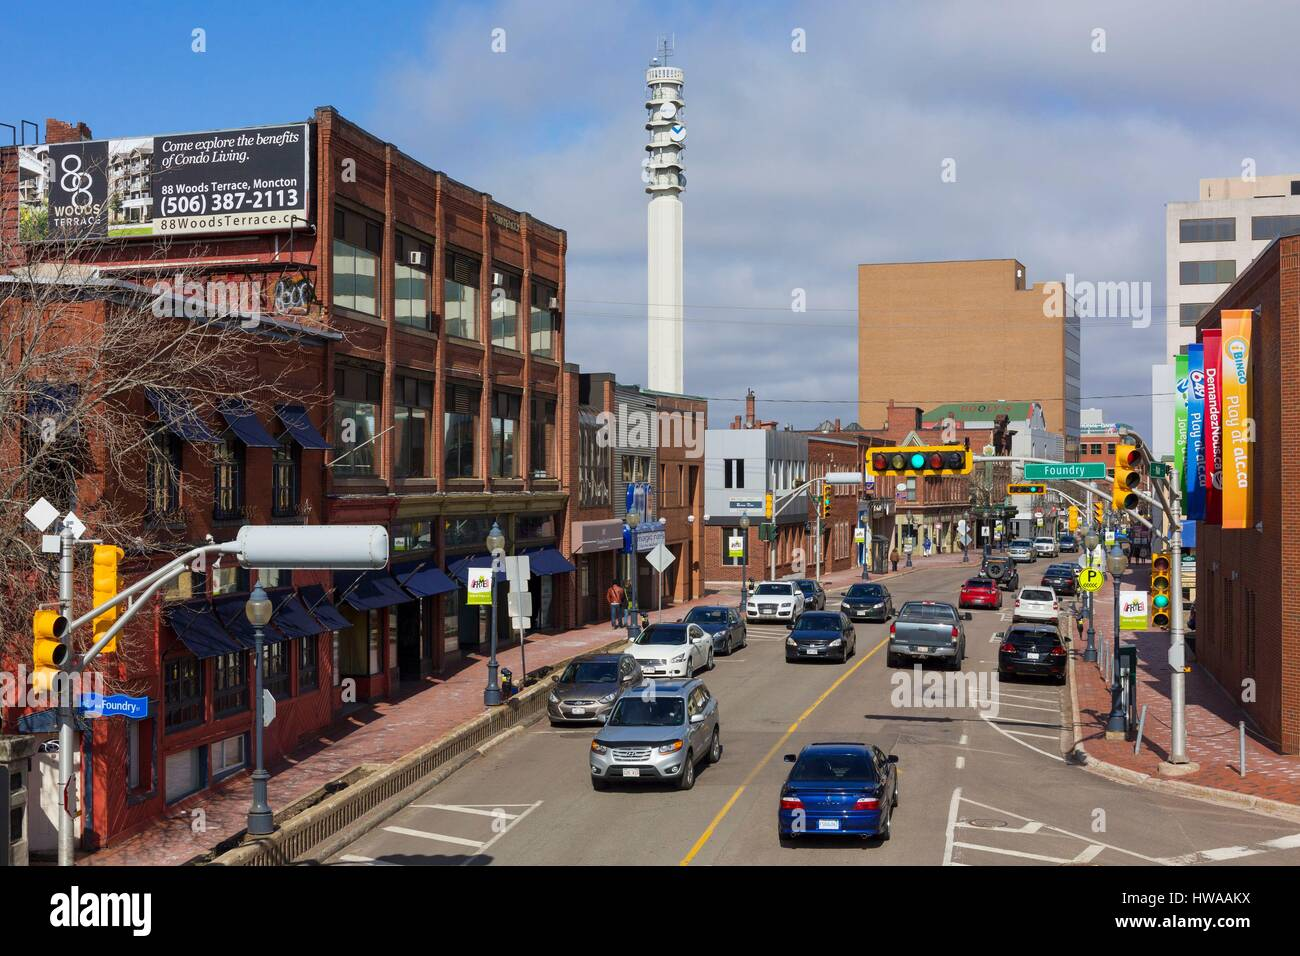 Canada, New Brunswick, Moncton, downtown, Main Street and